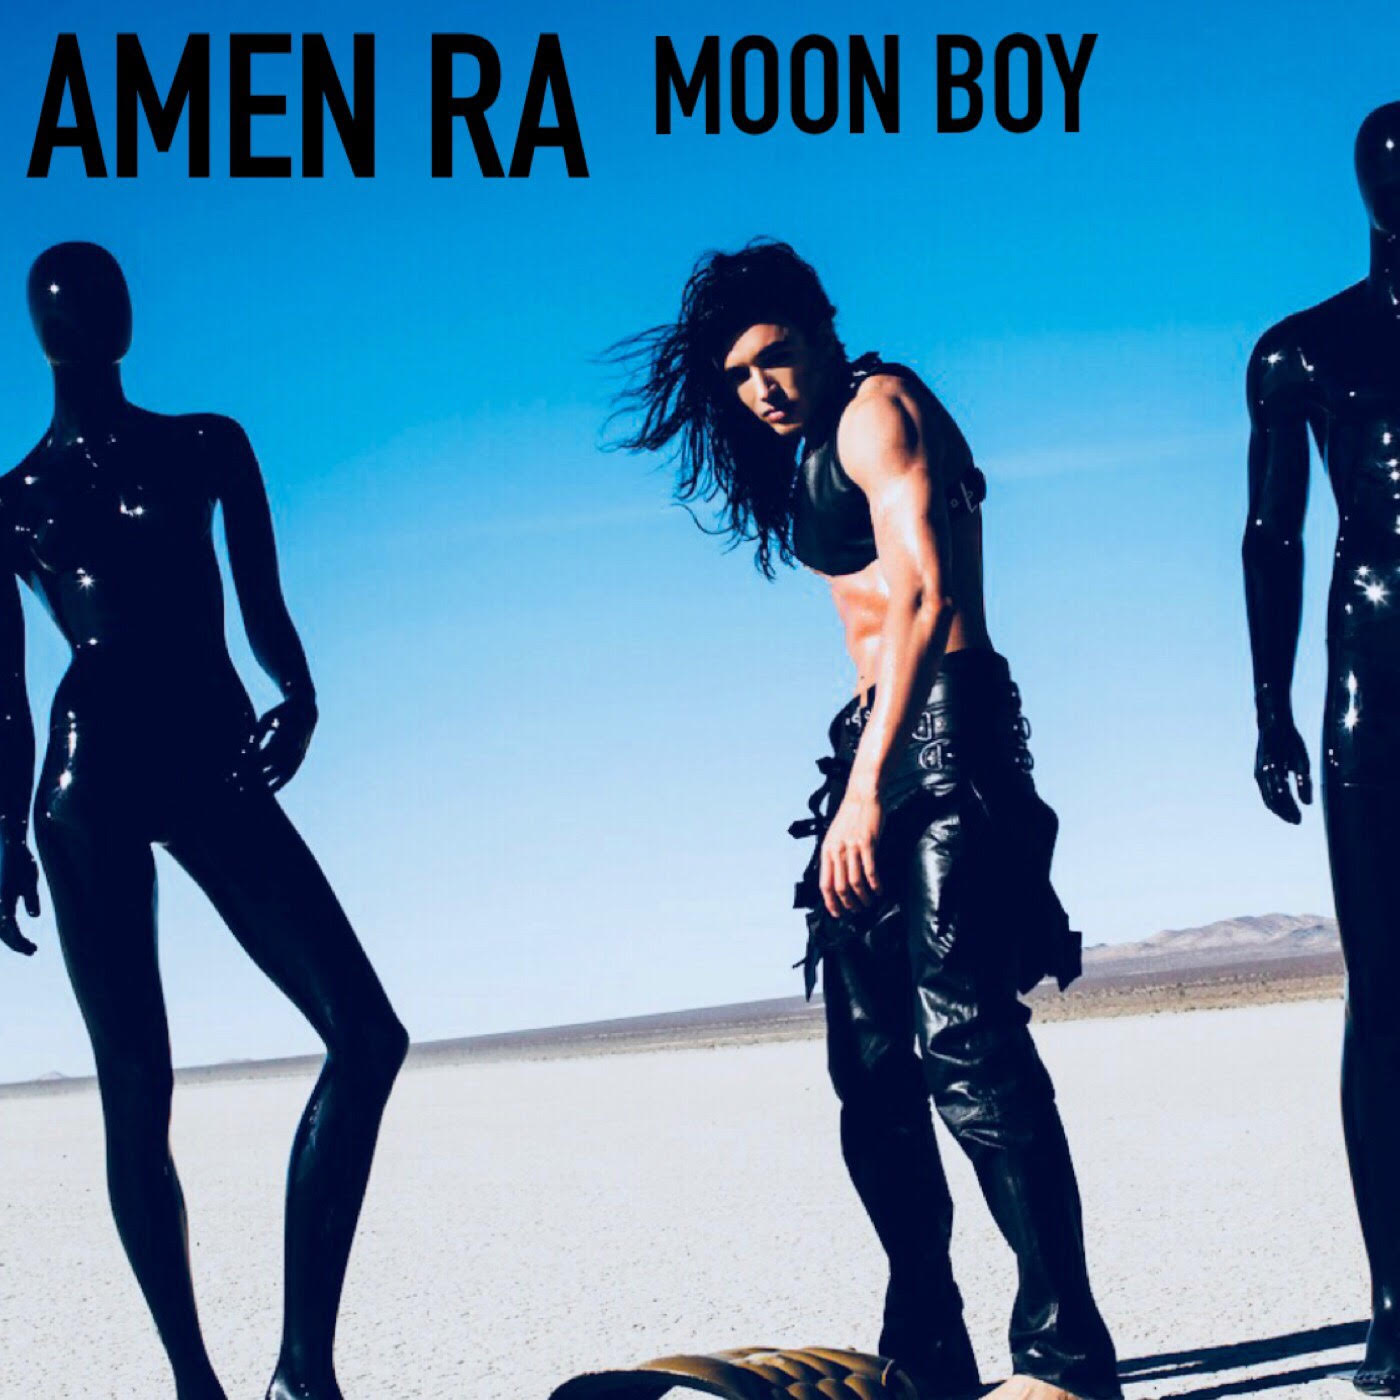 AMEN Ra - MOON BOY - Cover.jpg